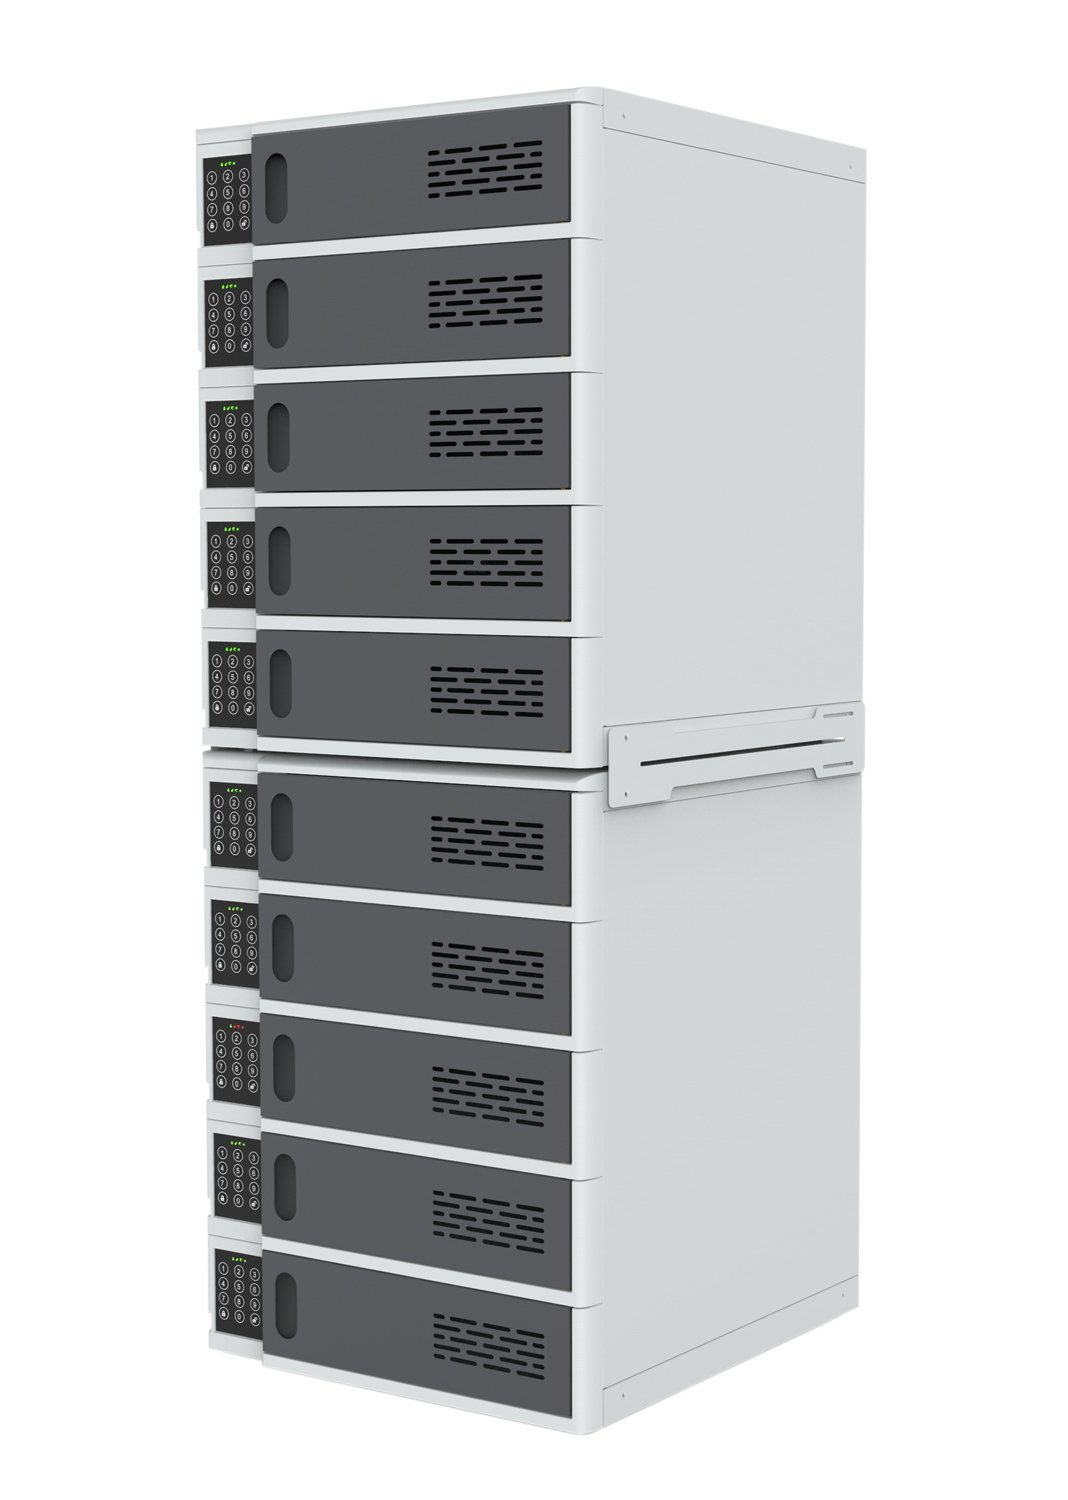 Luxor 10 Bay Charging Locker for Electronic Devices with Digital Key Lock System